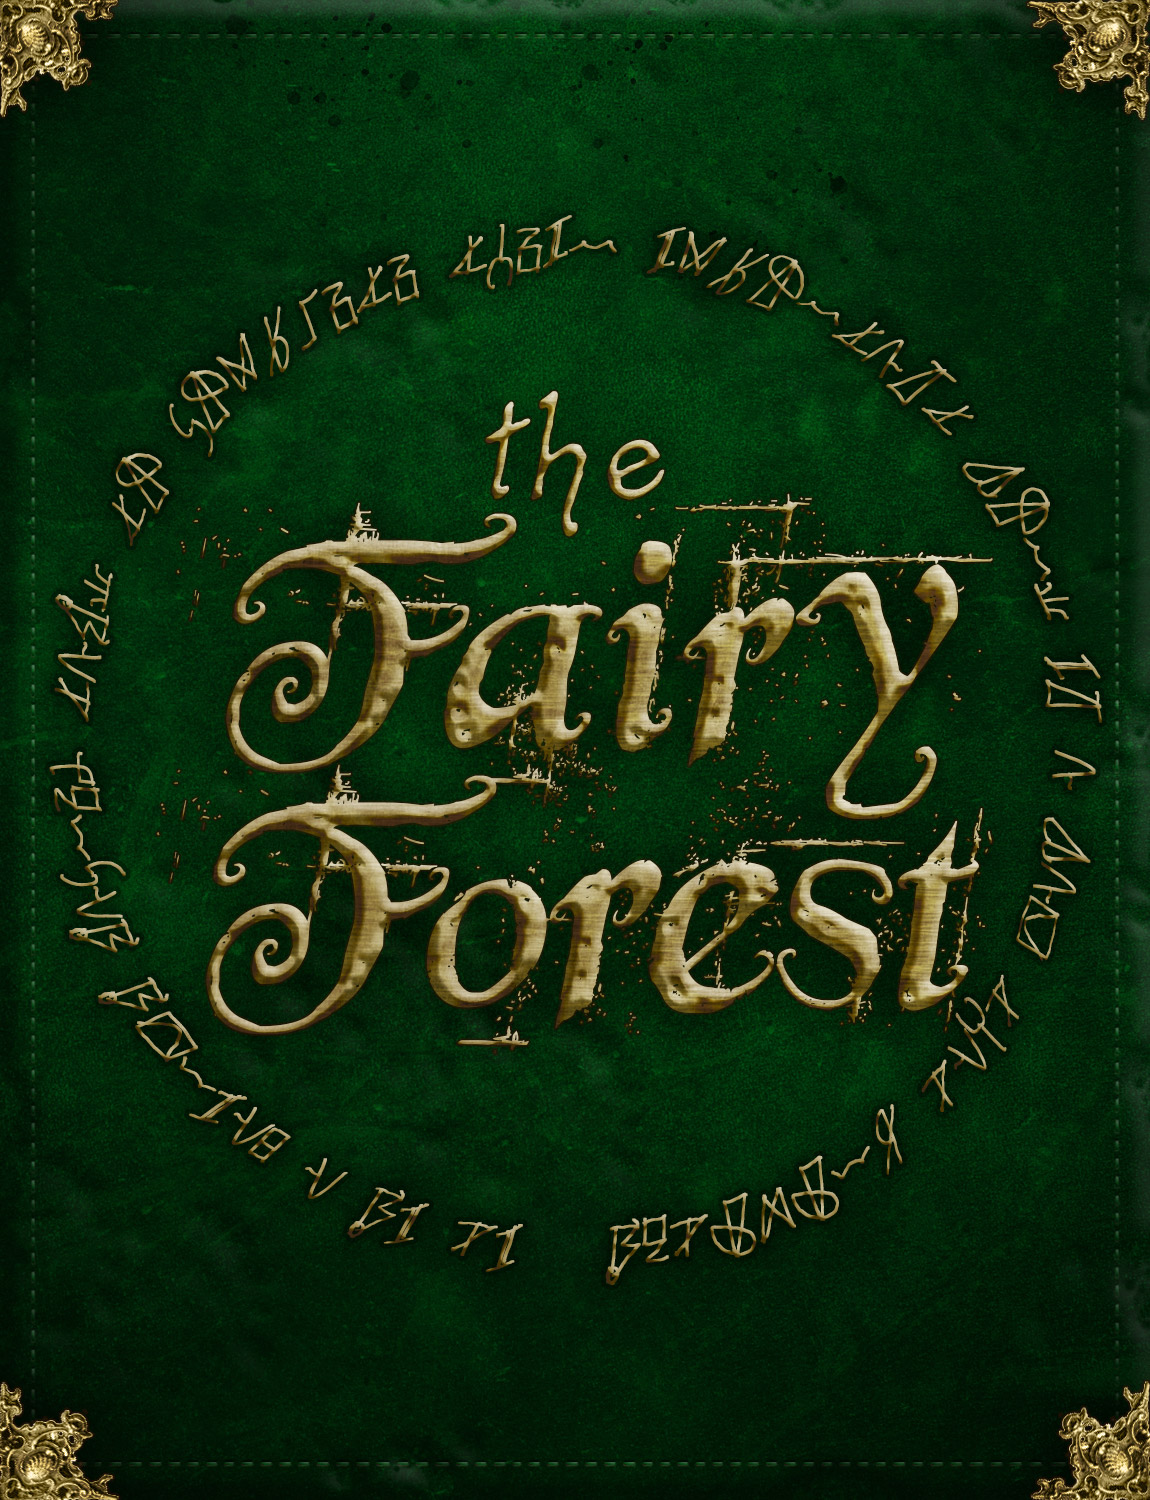 NaNo 2019 - The Fairy Forest